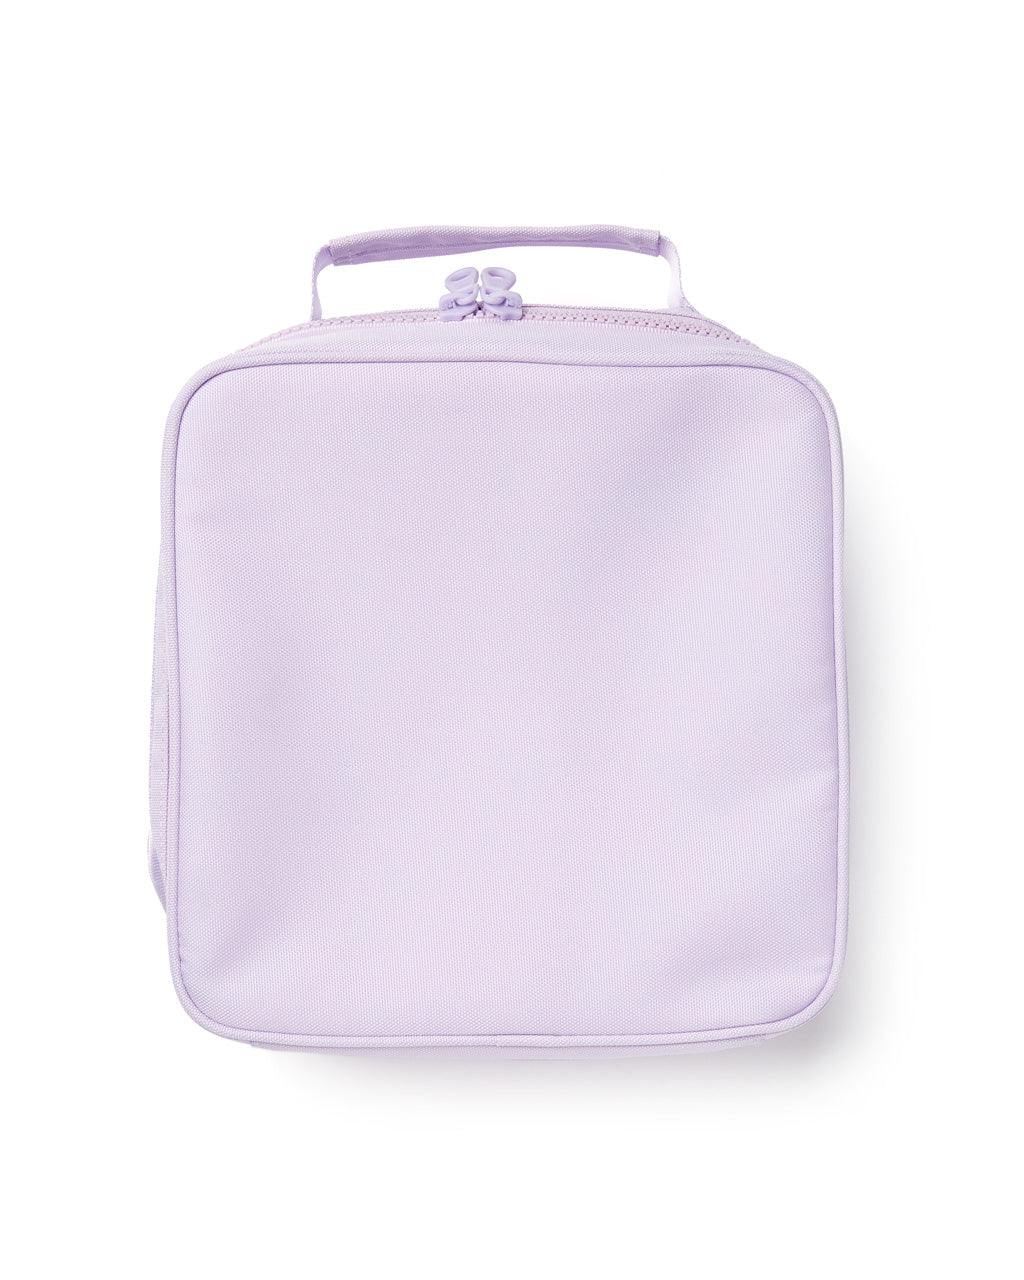 lilac square shaped lunch bag with zipper